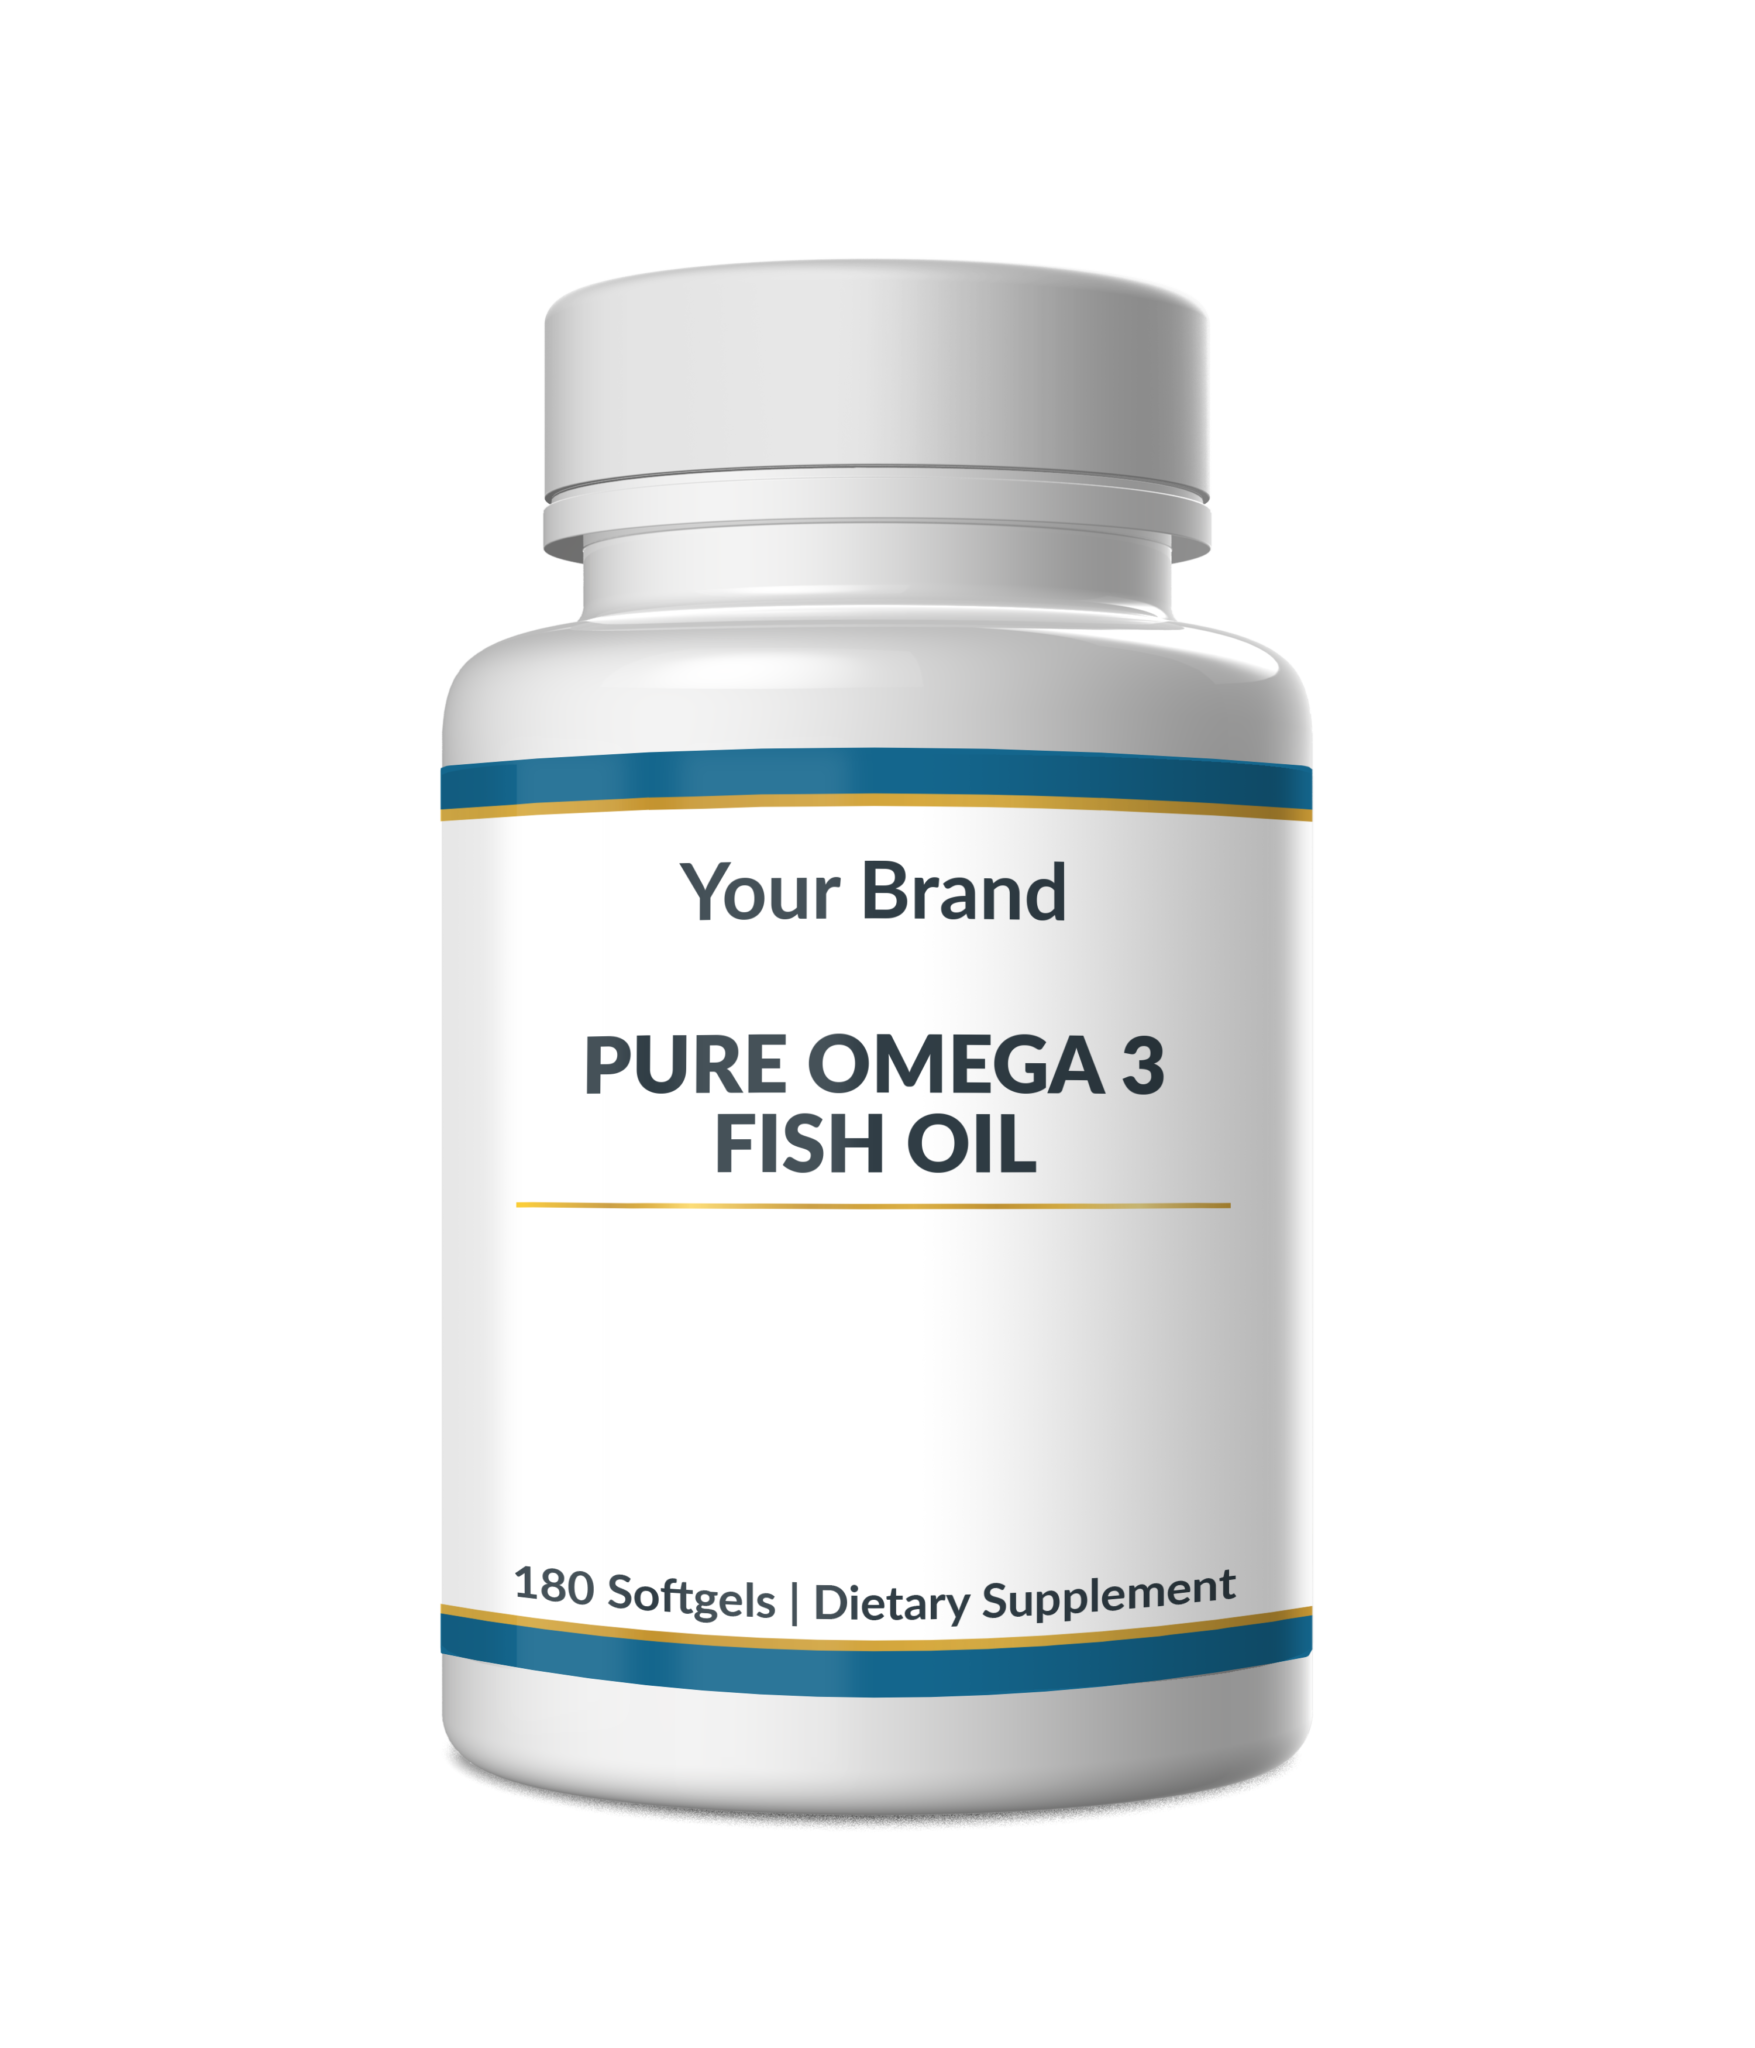 Pure omega 3 fish oil the lab genie for Fish oil weight loss dosage